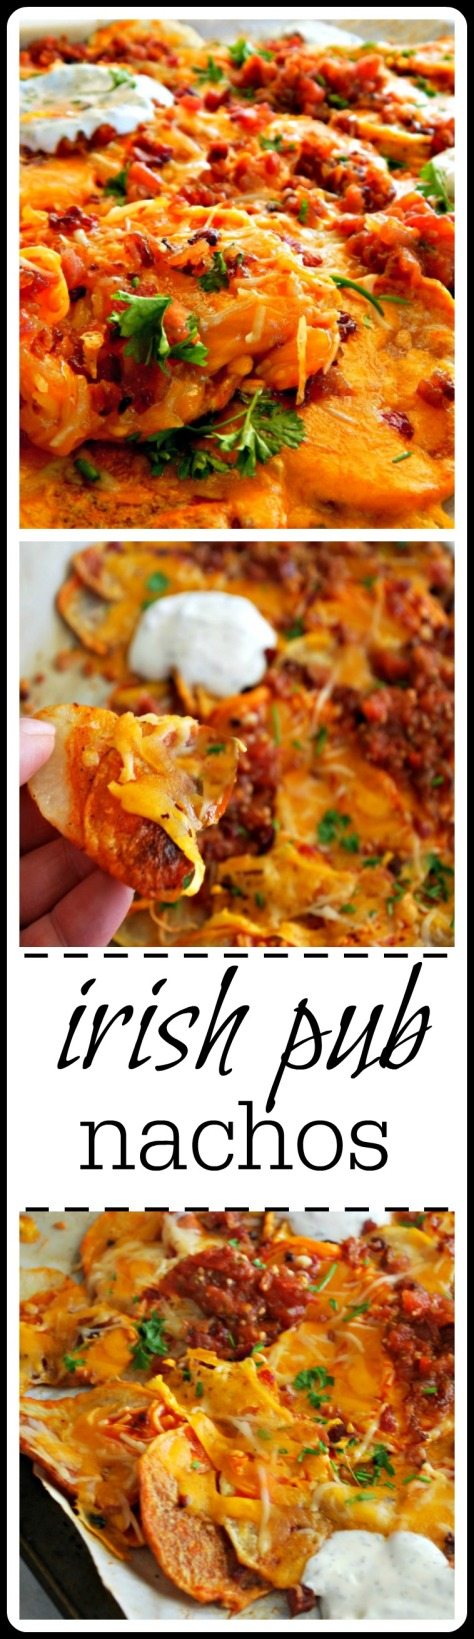 Irish Pub Nachos - Home-made oven roasted potato chips drenched in wing sauce, cheese, bacon (or corned beef) salsa and dolloped with a home-made ranch!